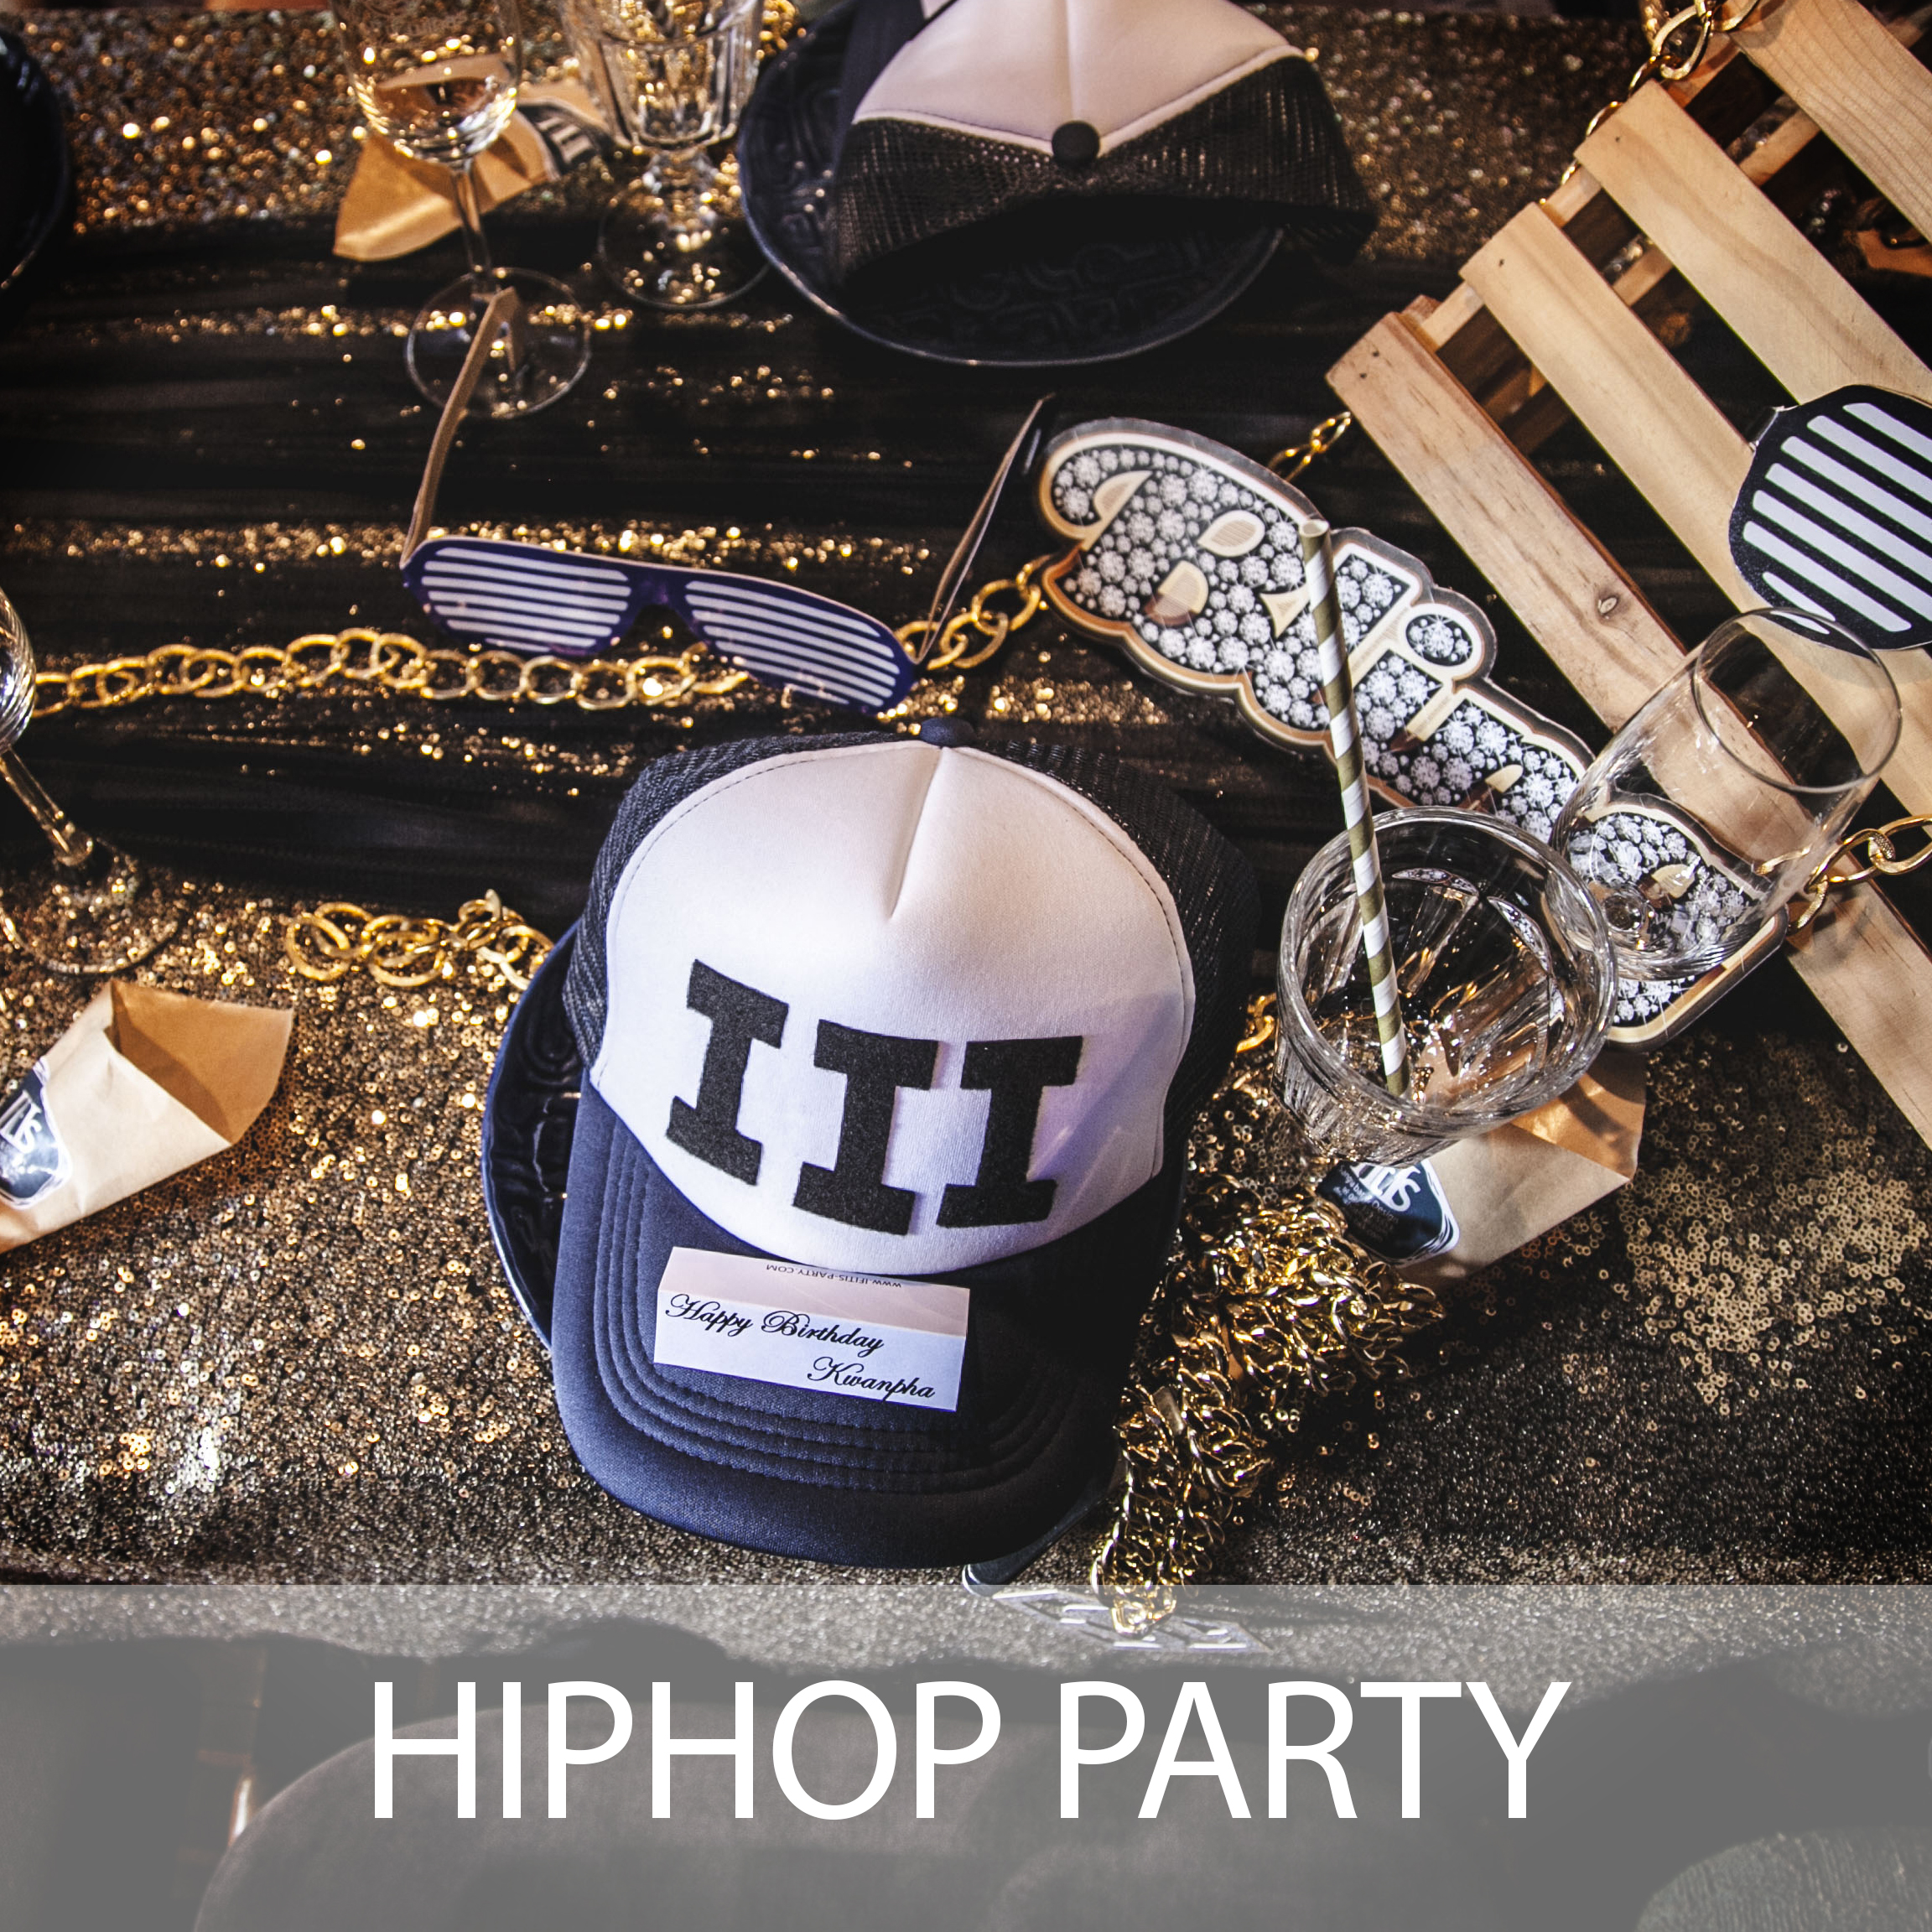 Hip hop party